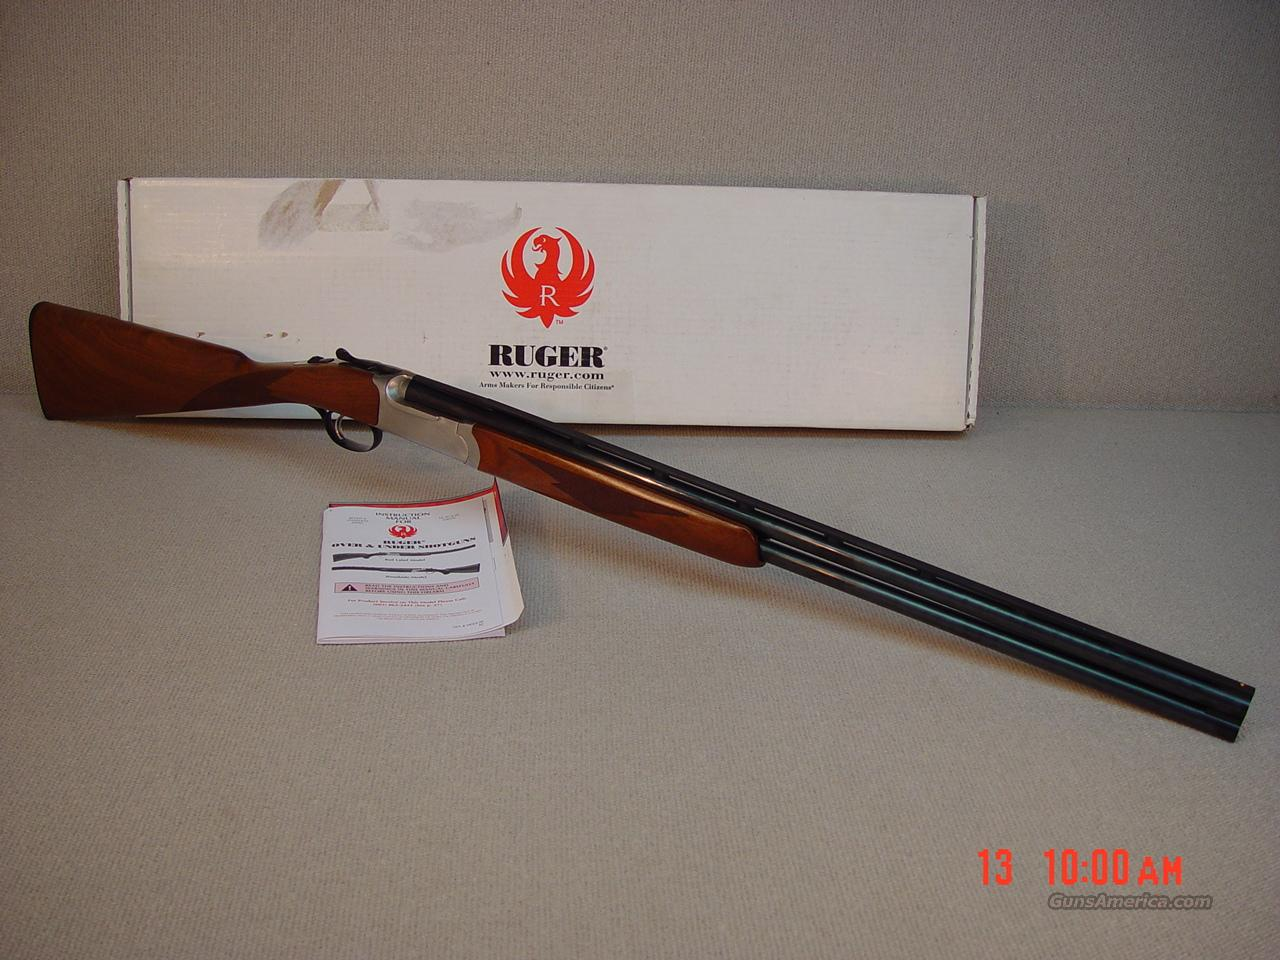 RUGER RED LABEL SHOTGUN 28GA  Guns > Shotguns > Ruger Shotguns > Hunting